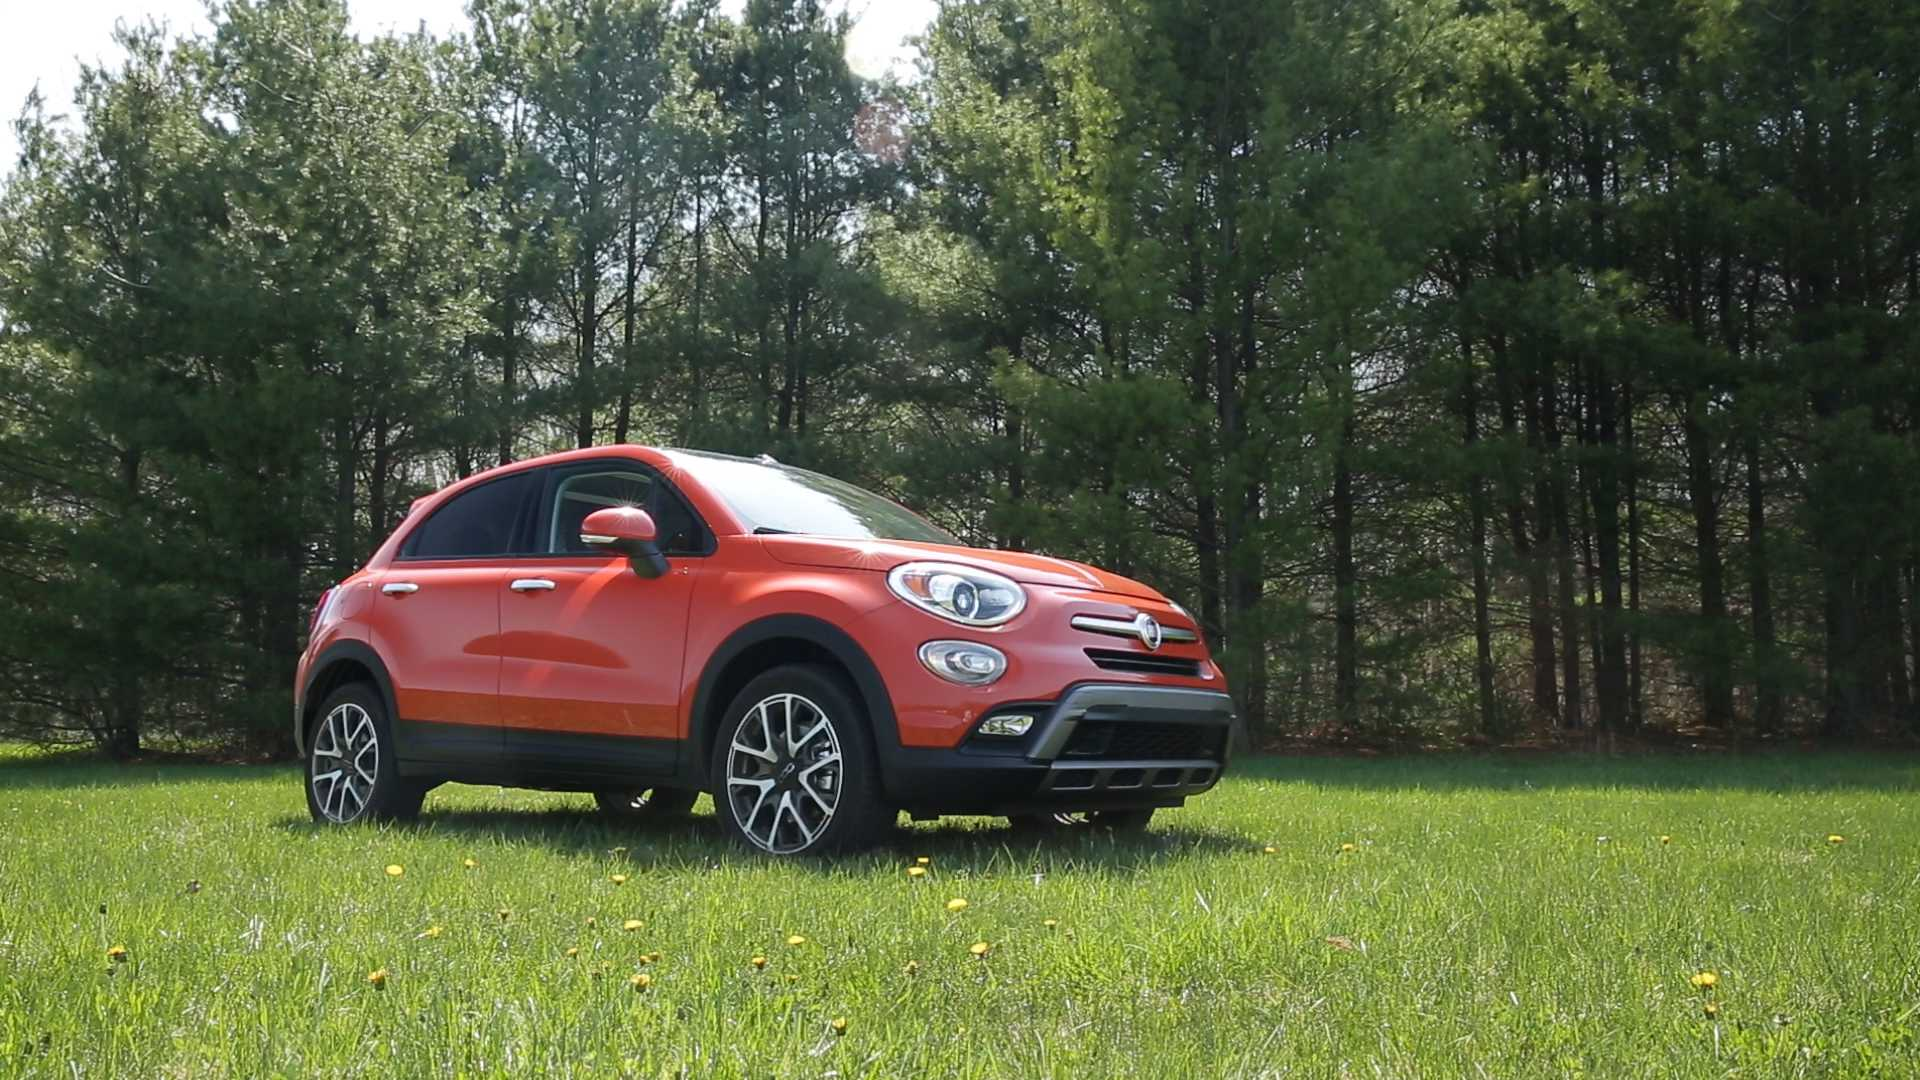 2016 fiat 500x review consumer reports. Black Bedroom Furniture Sets. Home Design Ideas